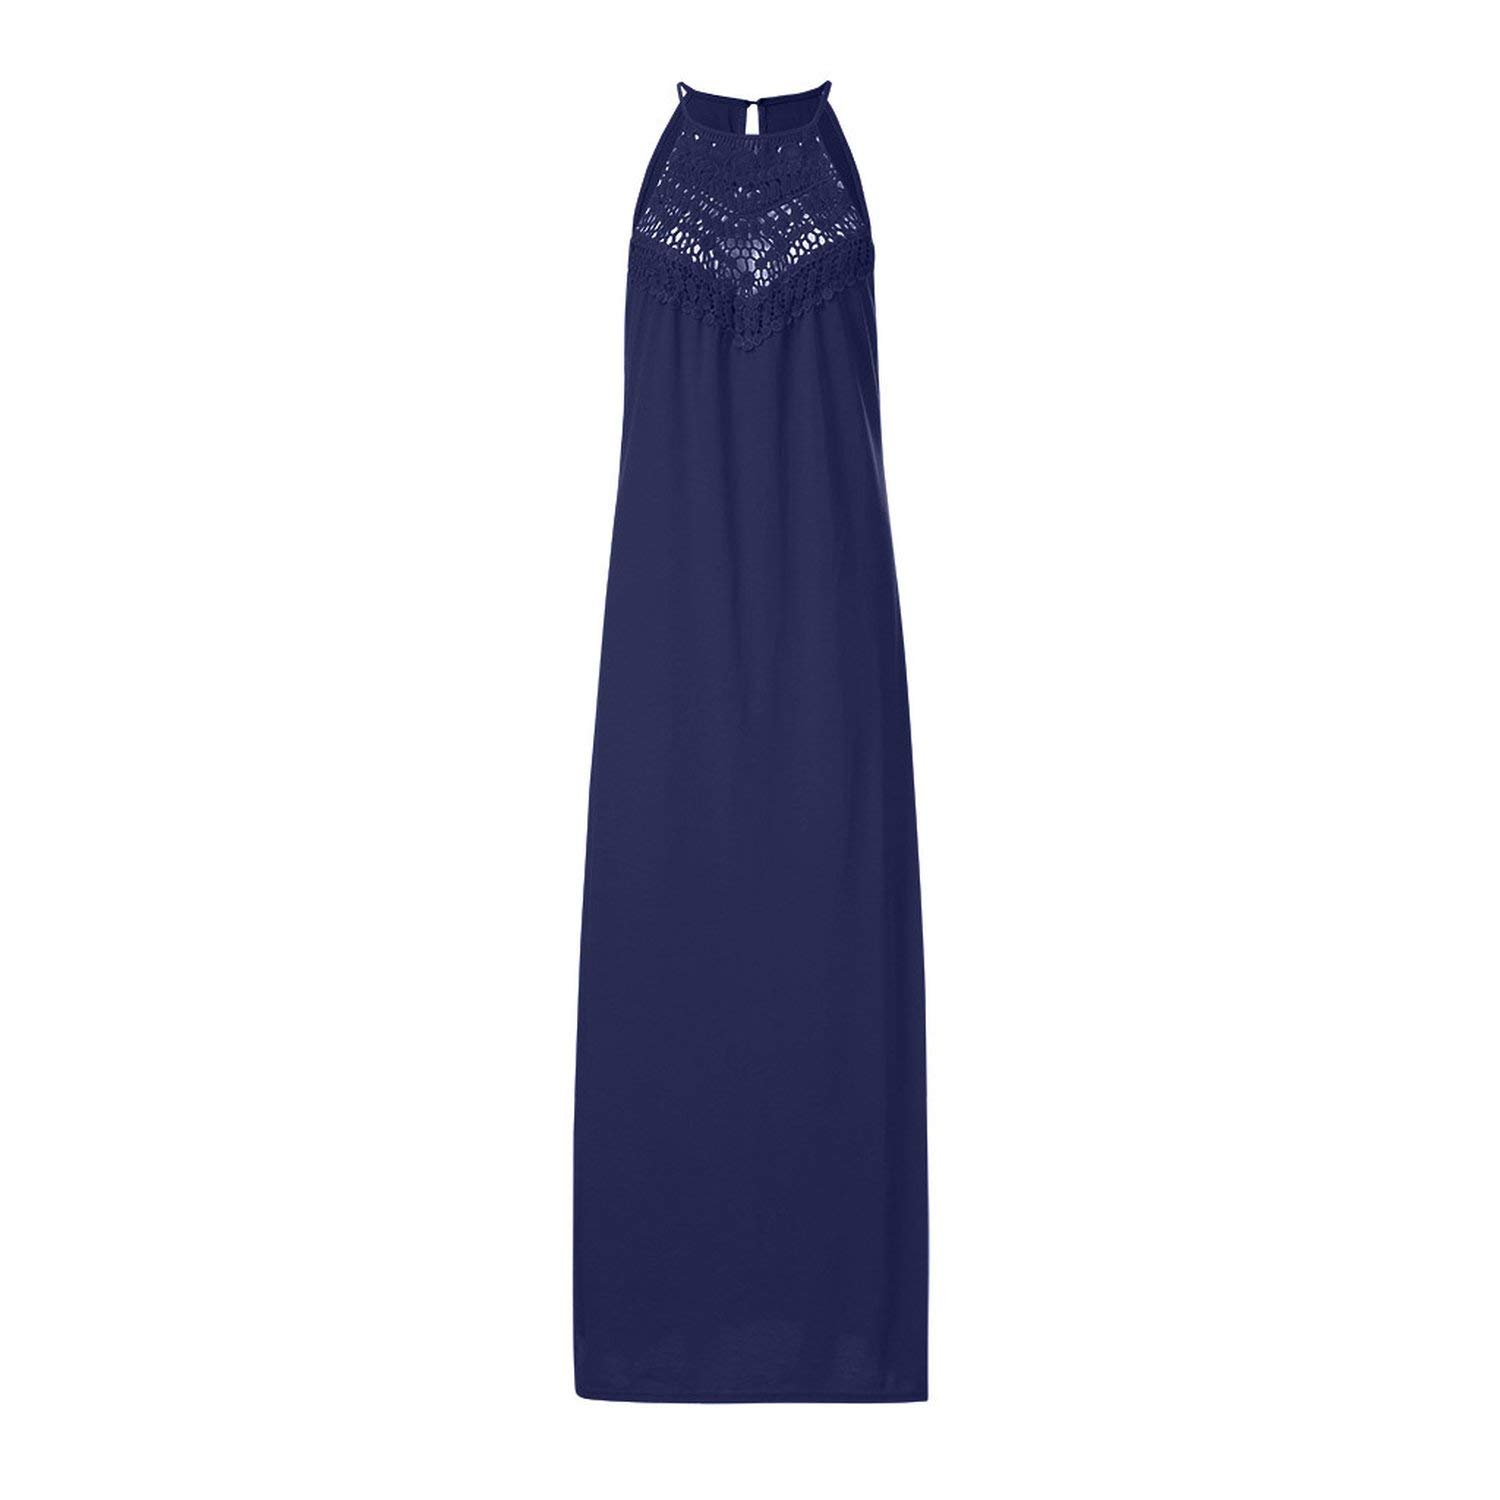 bluee Glittering time Trendy Solid color Long Dress Women's Sexy Fashion Hanging Neck Dress Lace Hollow Loose Large Dress Vestidos